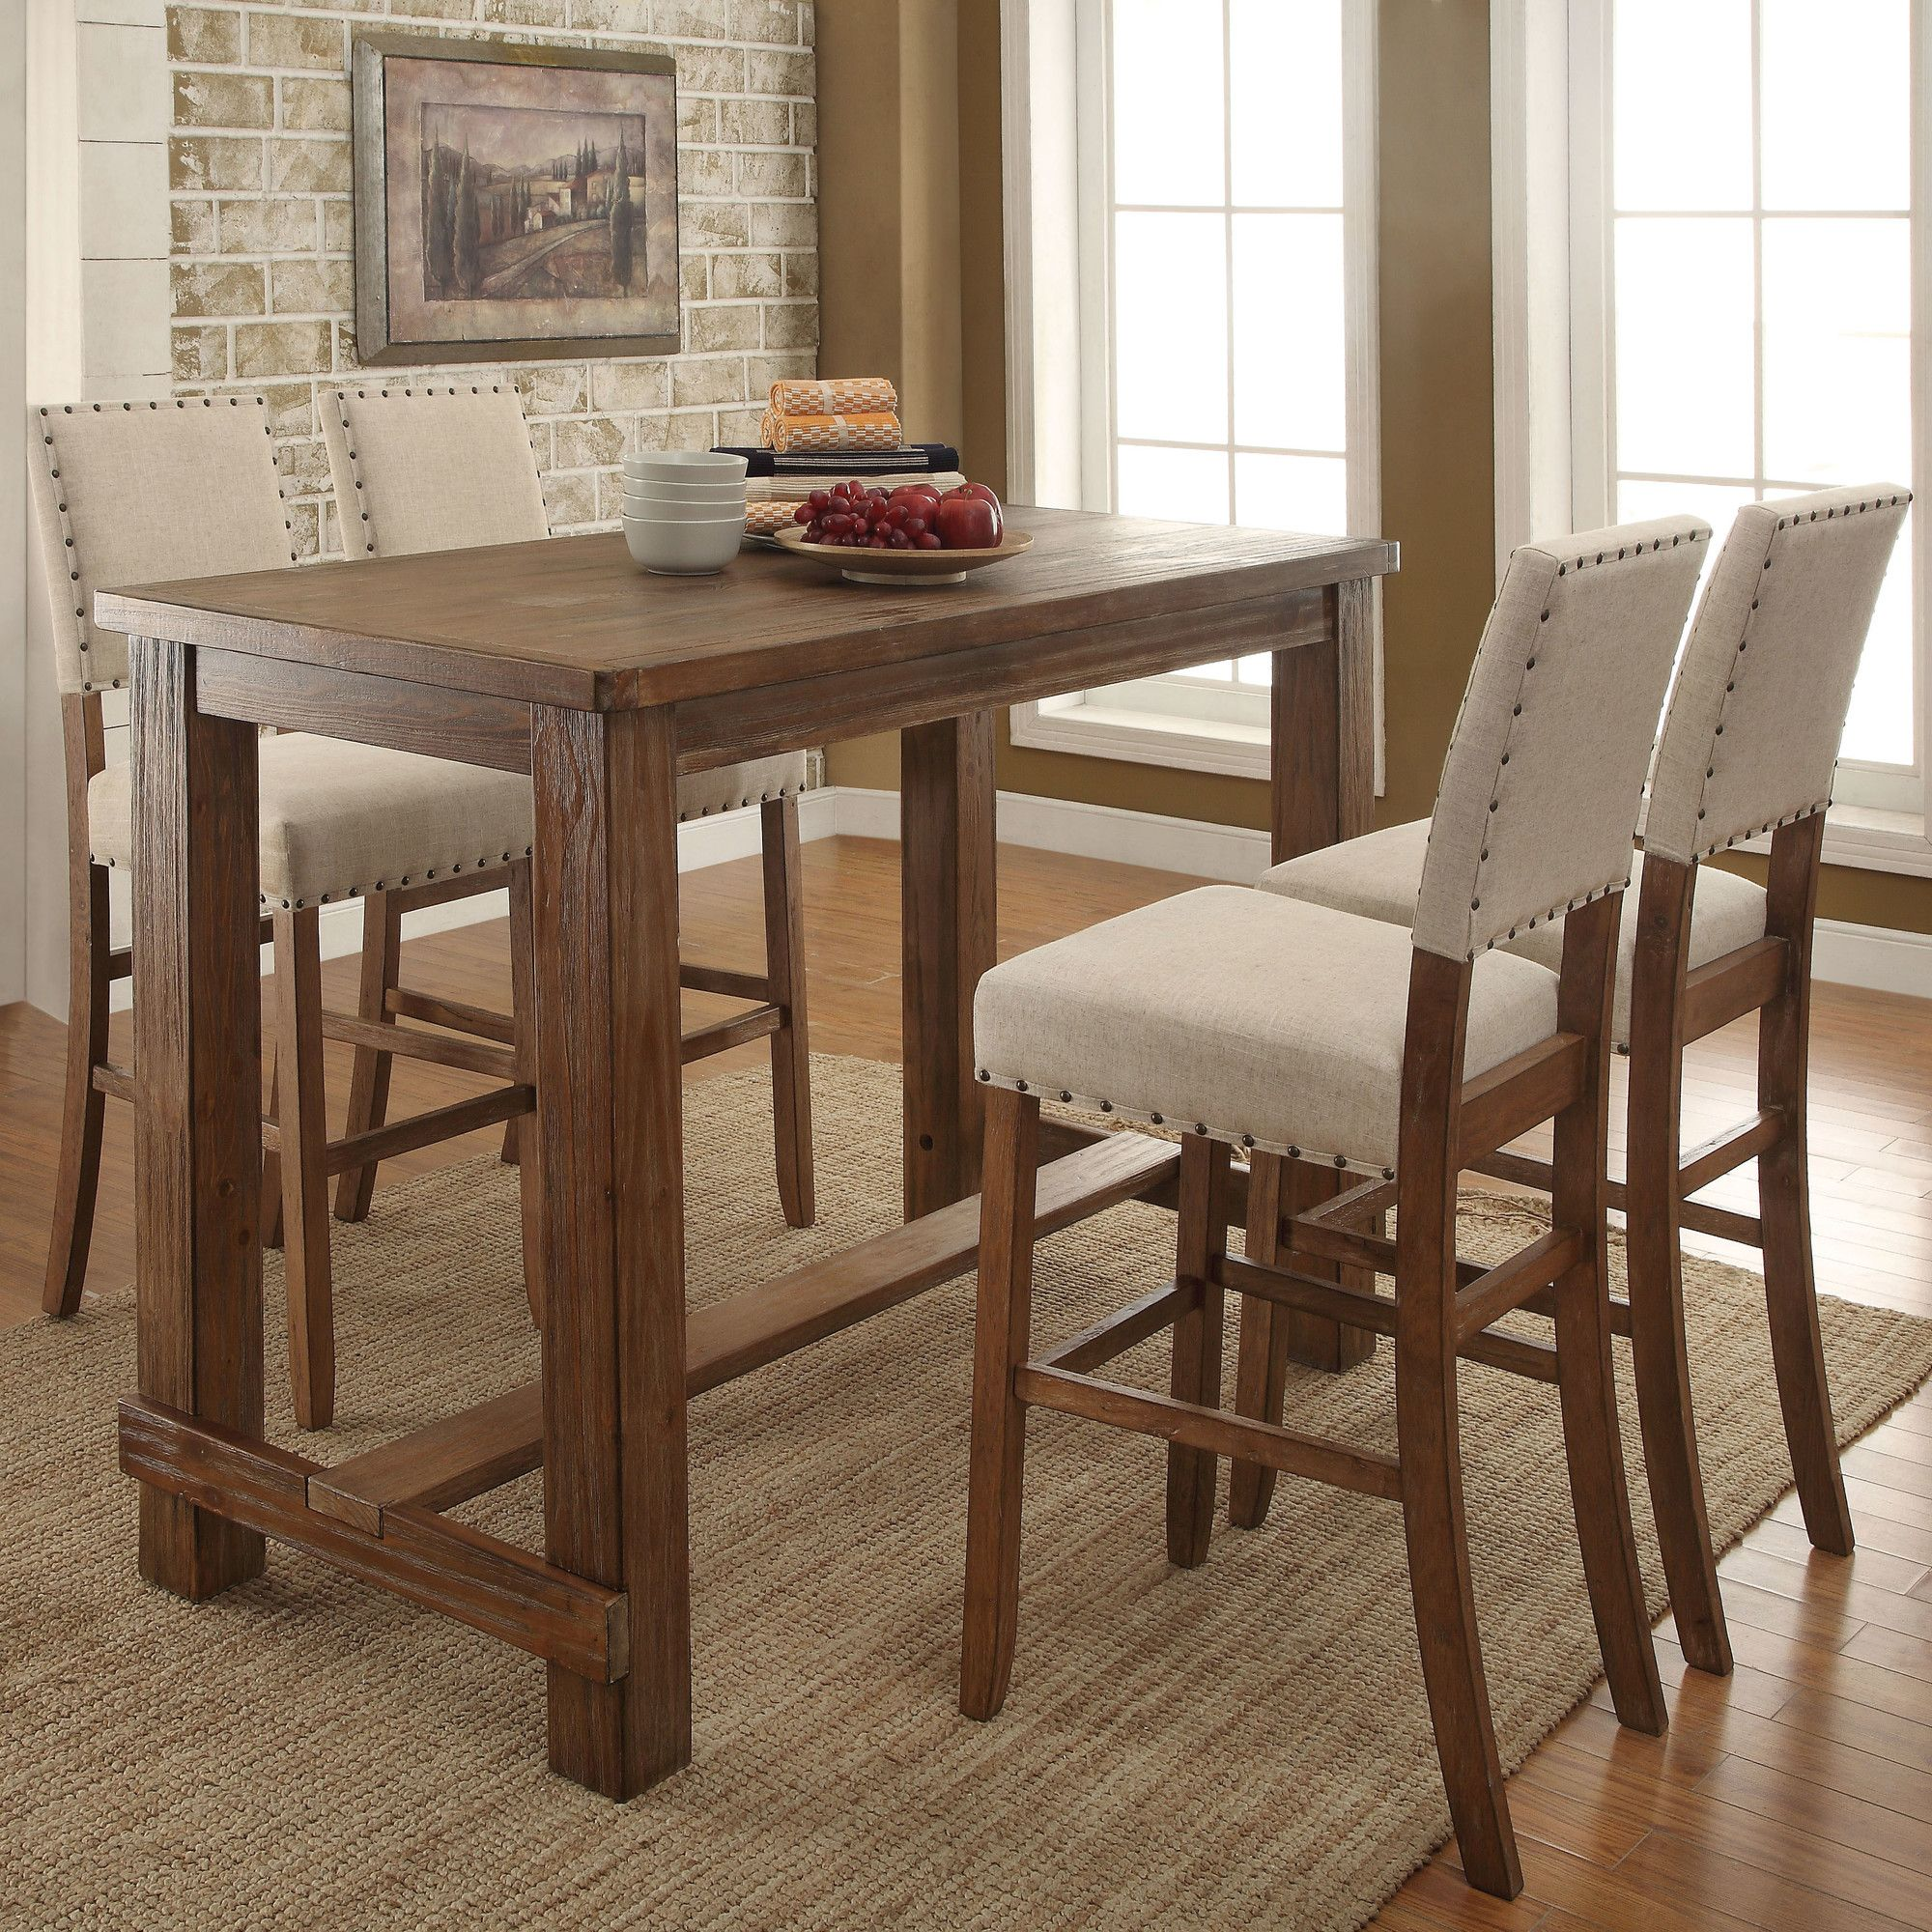 Features Finish Natural Tone Contemporary Style